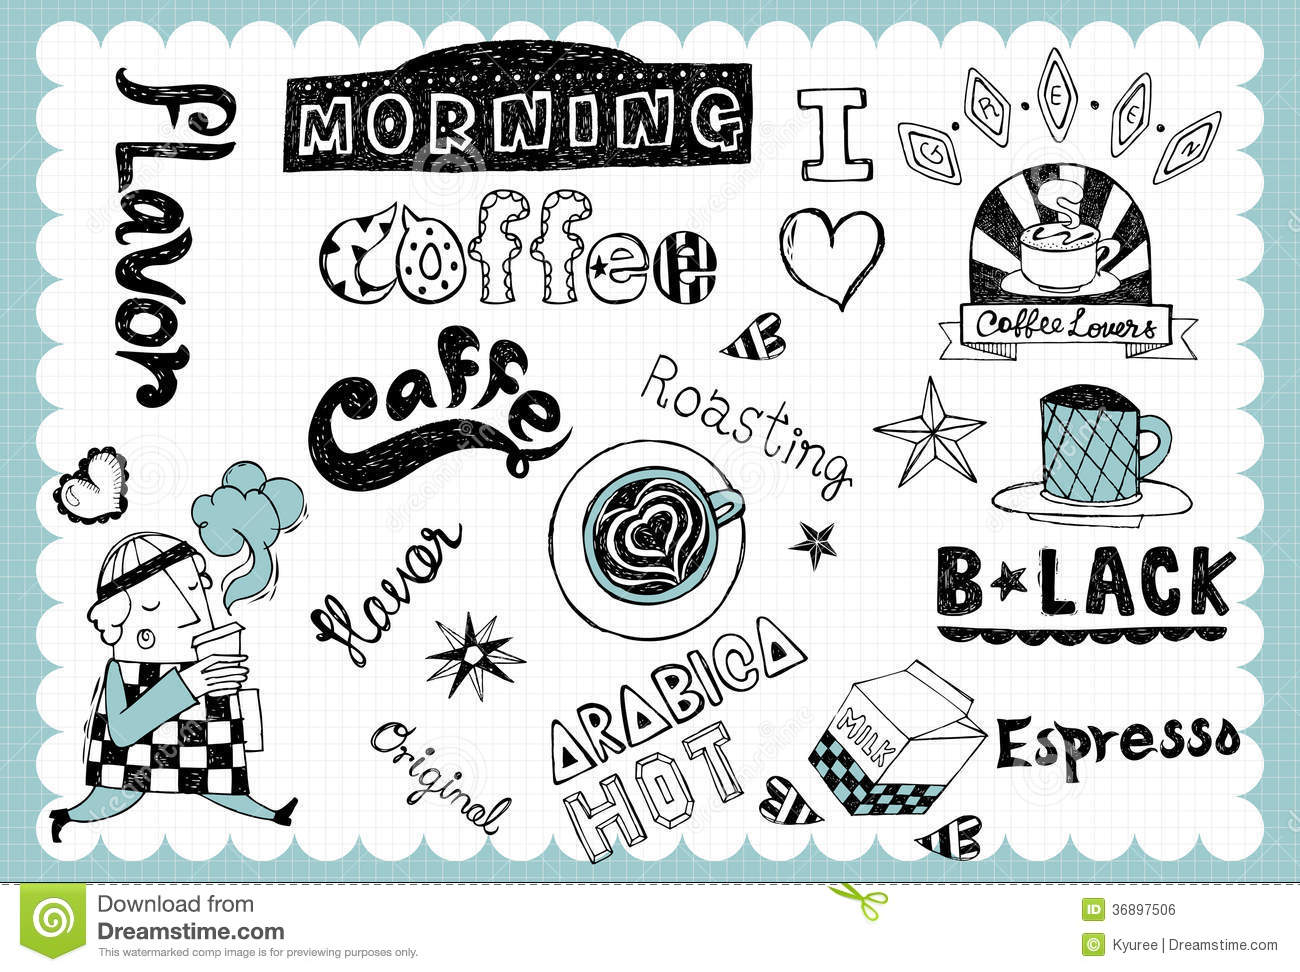 vintage coffee illustration with coffee related words in hand drawn style and on the grid background all text and illustration is hand drawn